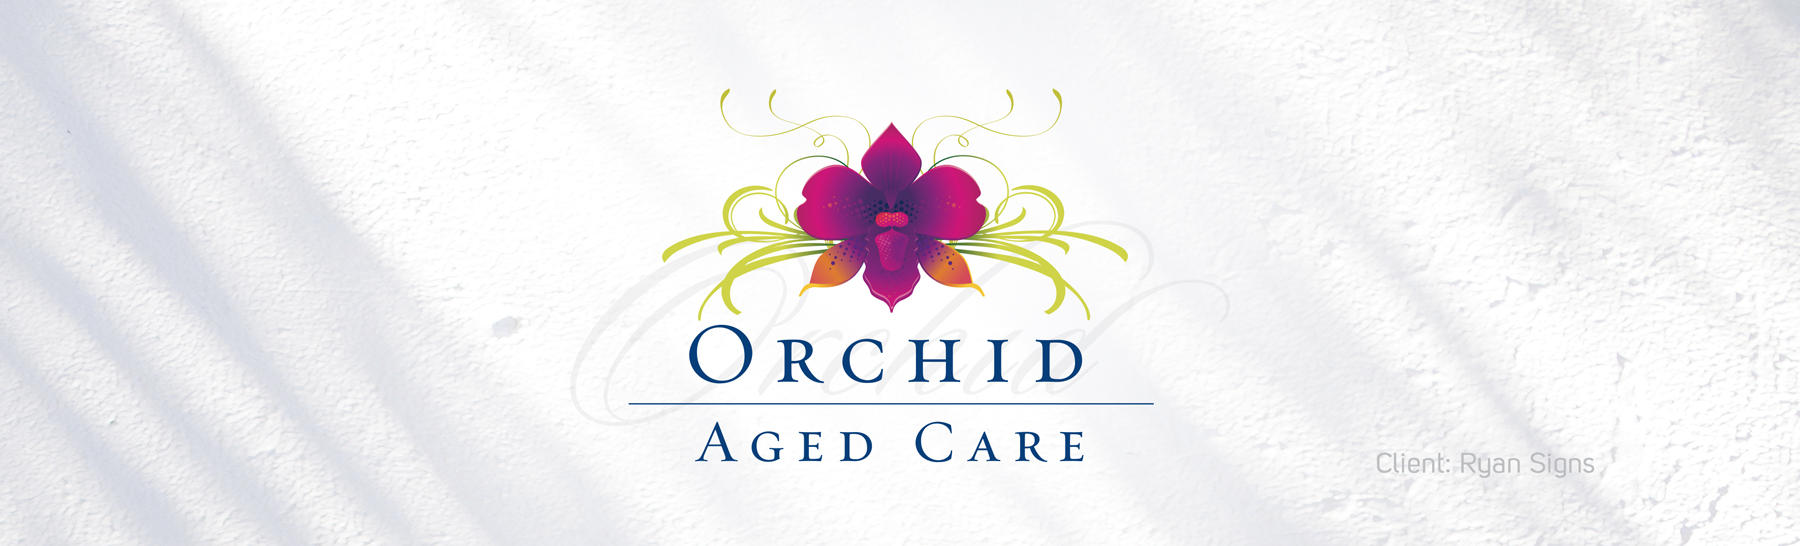 Orchid Aged Care Facility Logo Banner